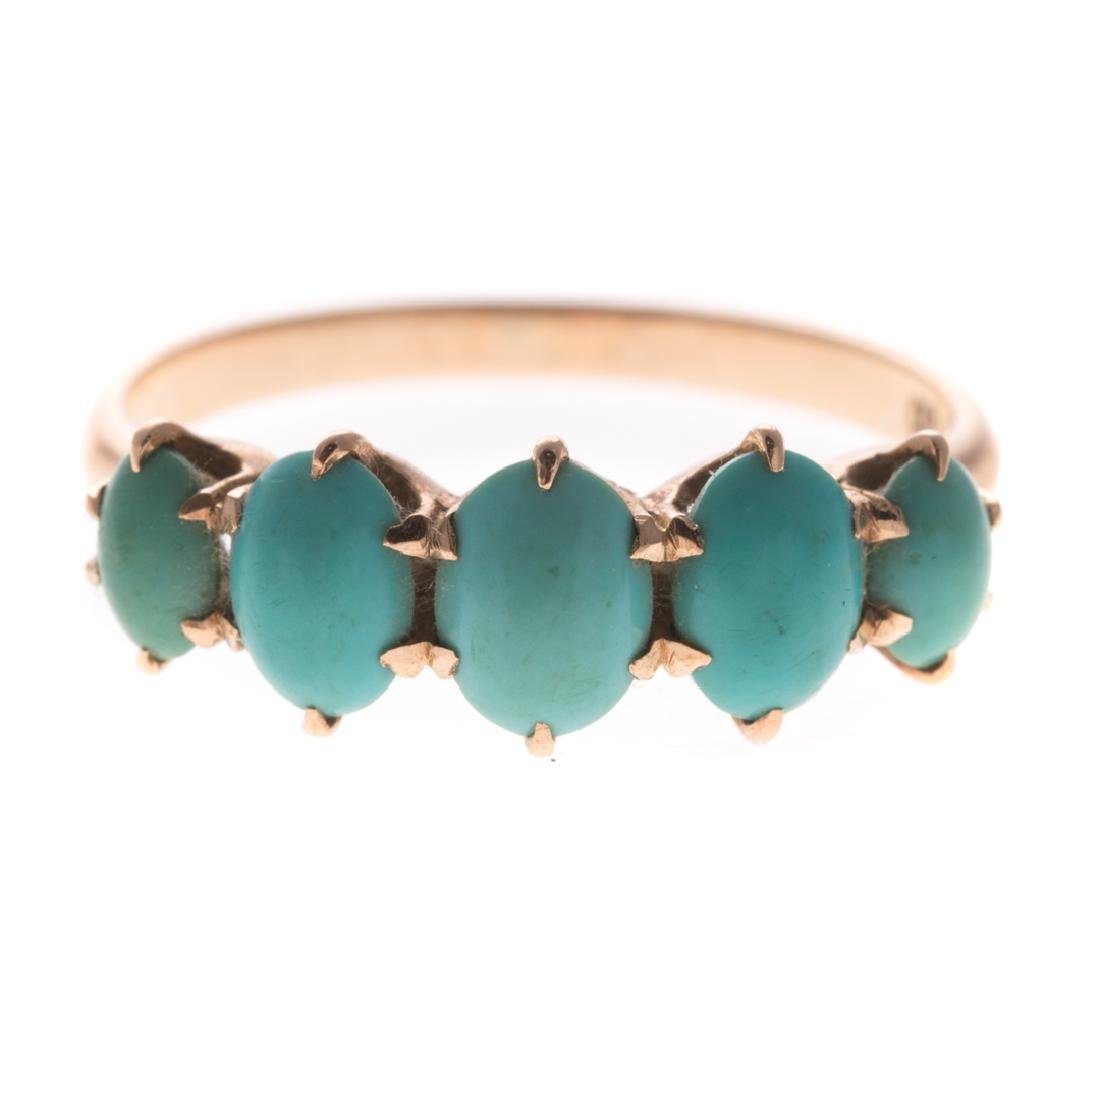 A Lady's Turquoise & Seed Pearl Pin & Ring in Gold - 3